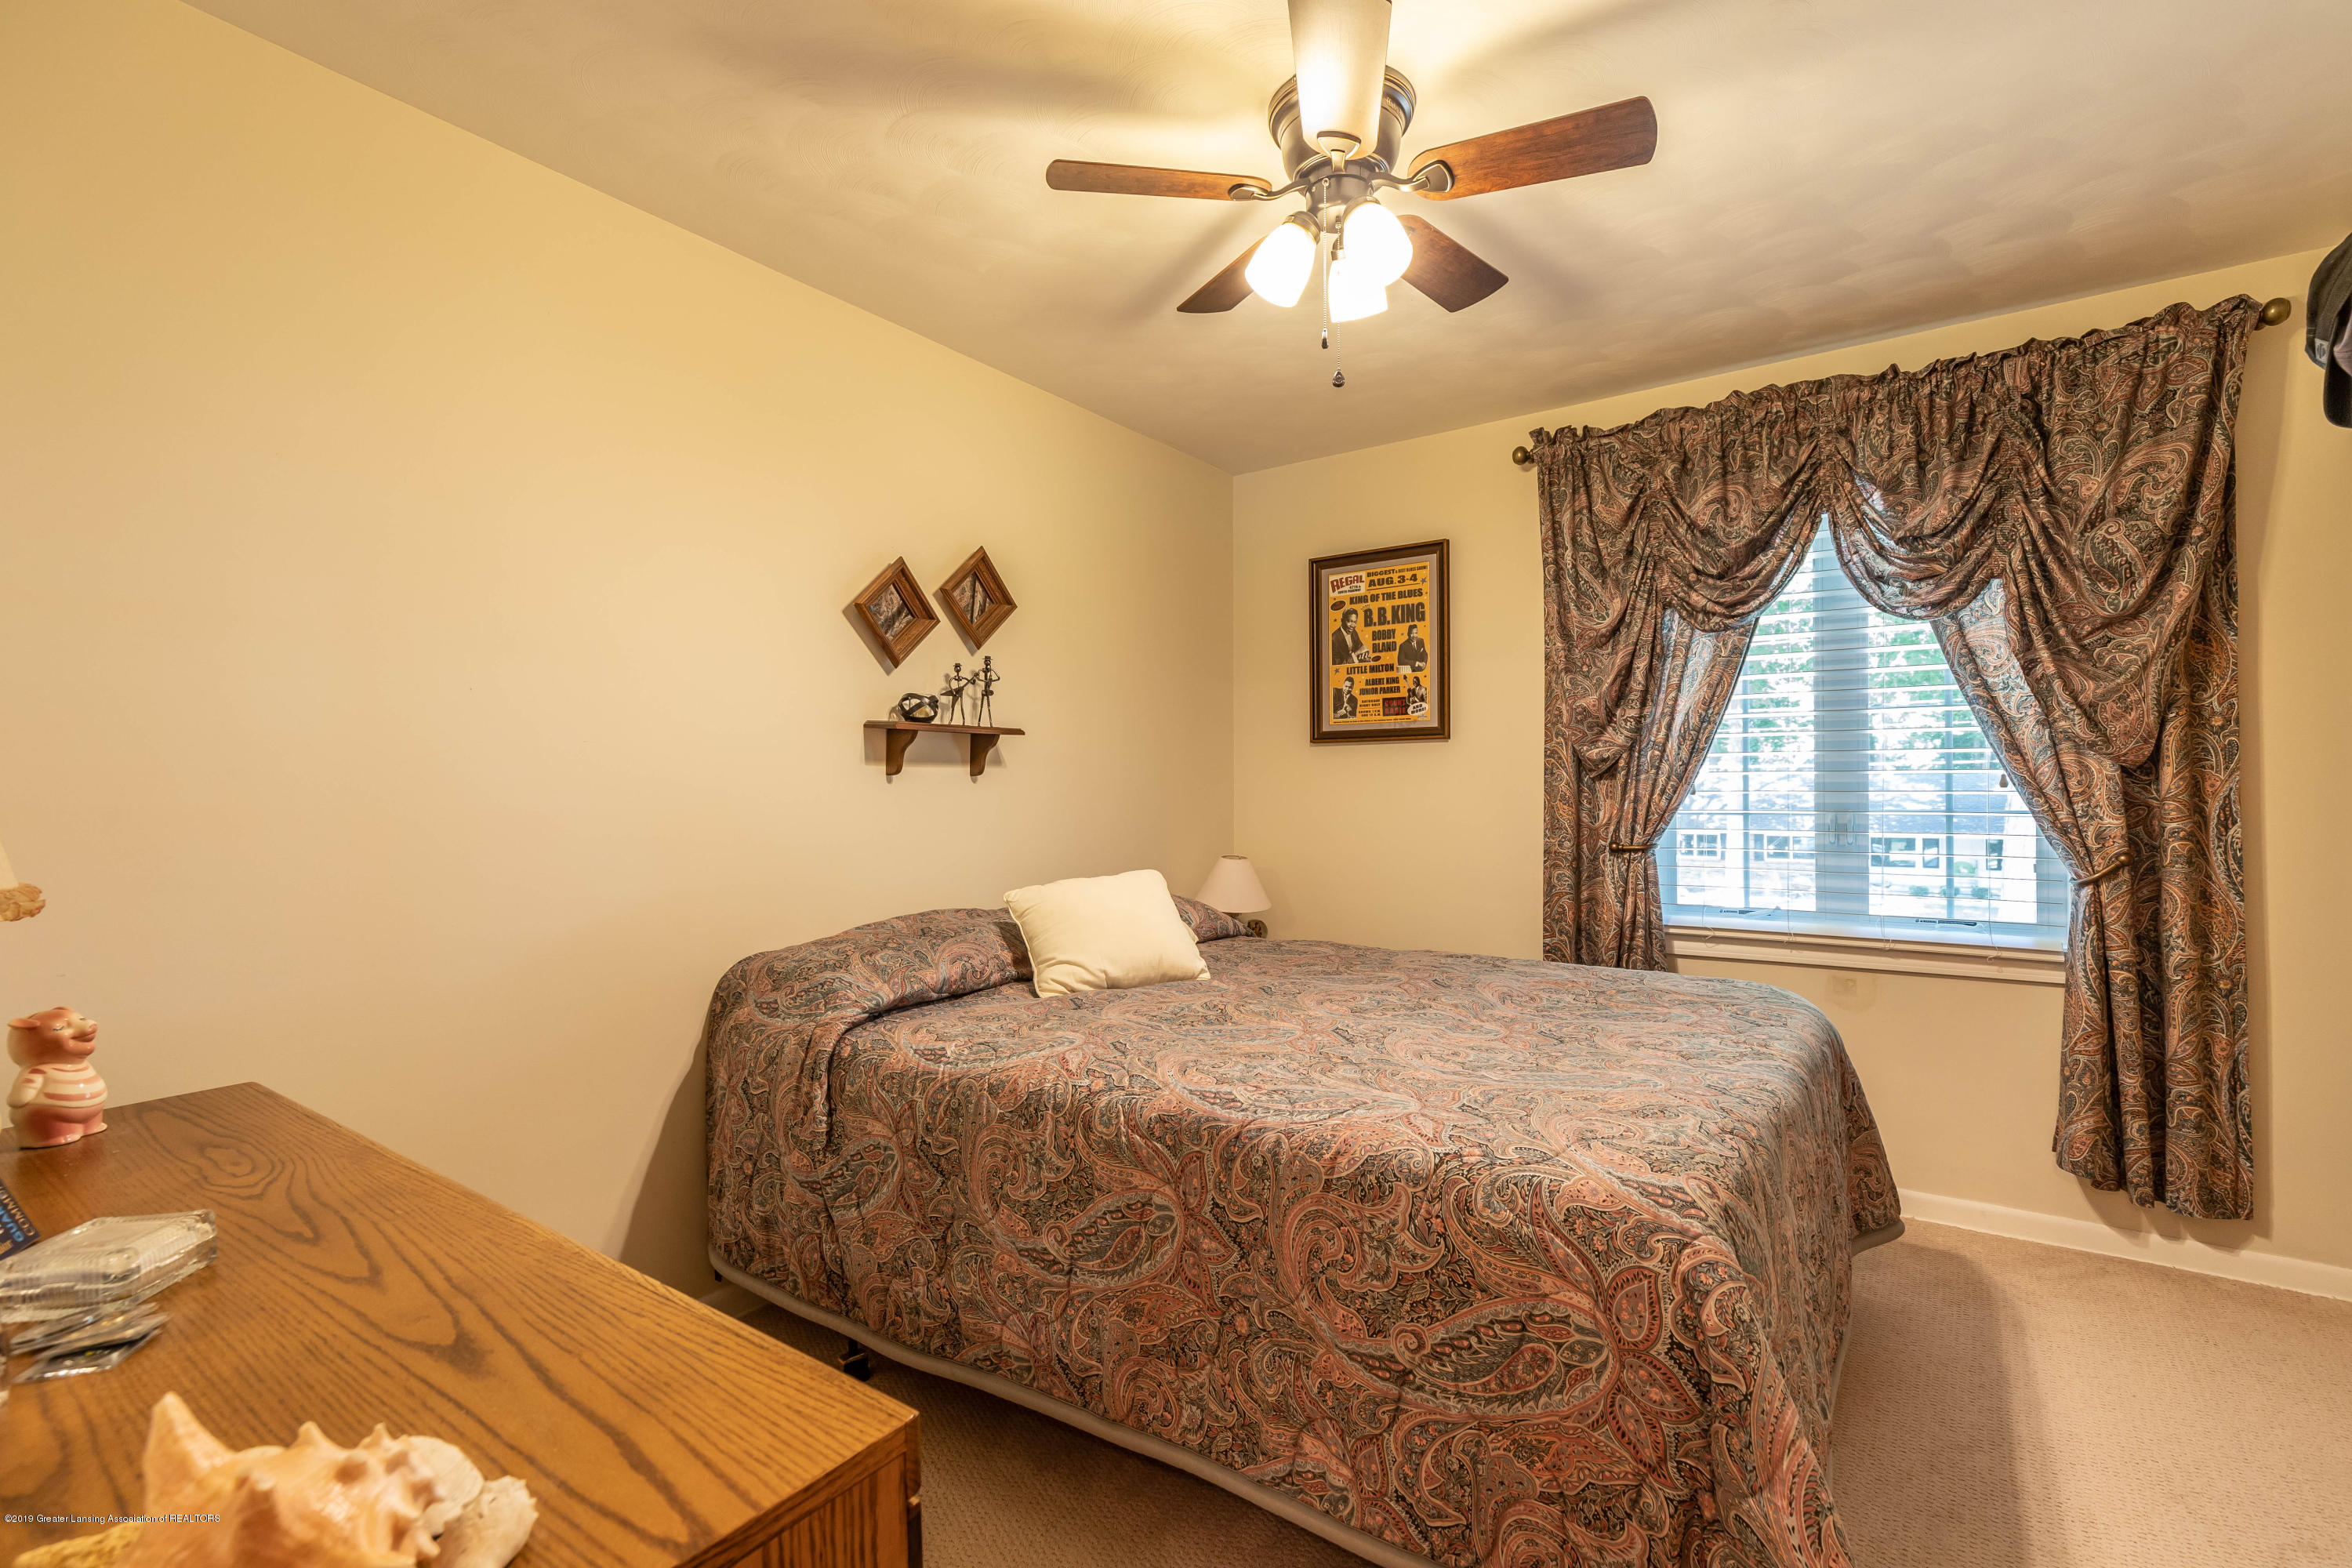 4913 Sugarbush Ln - Bedroom - 25